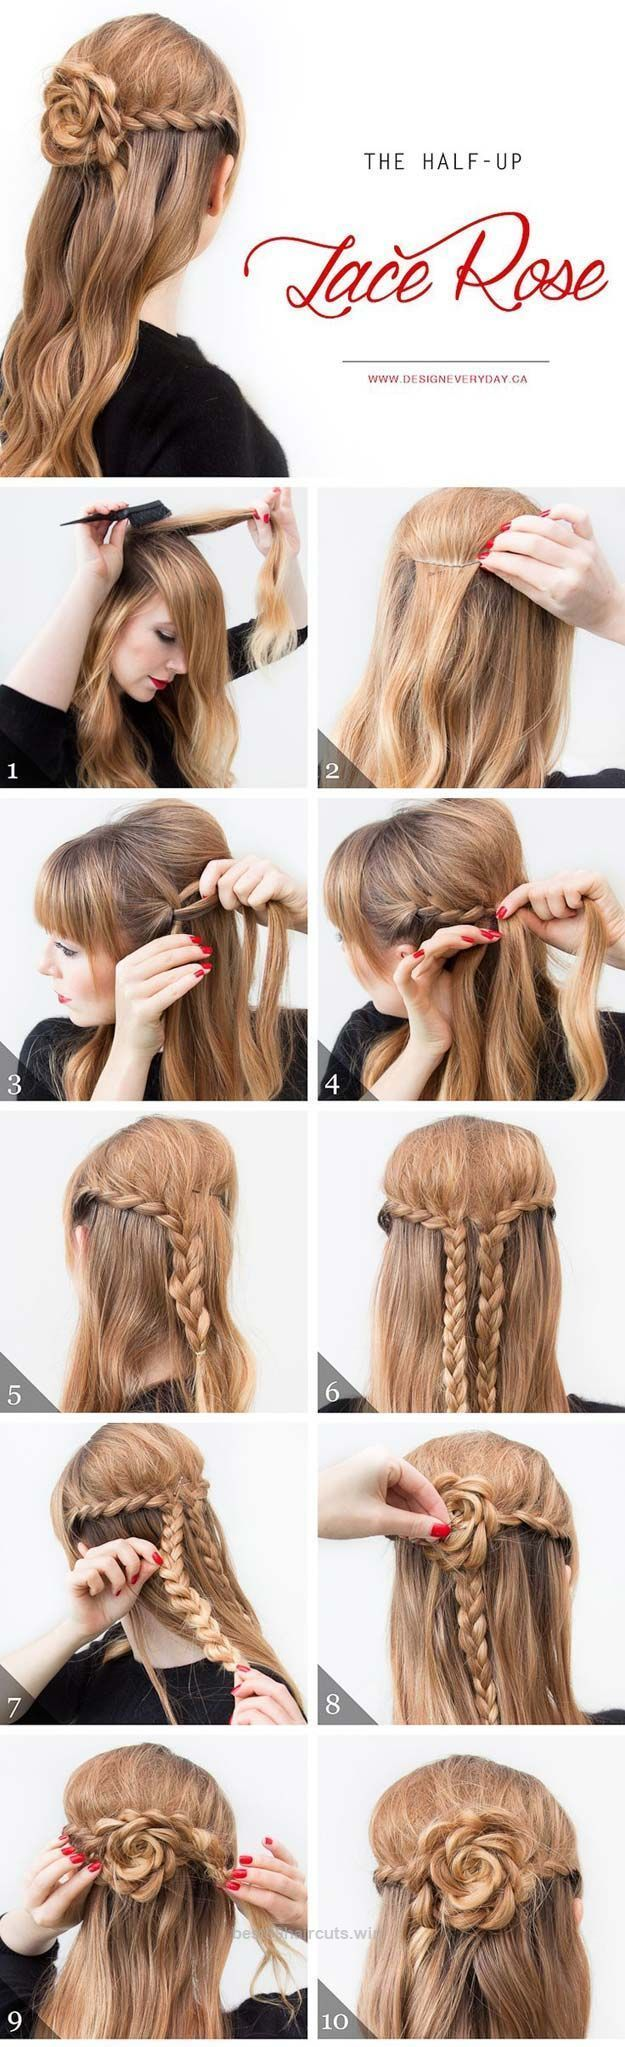 Quick And Easy Hairstyles Unbelievable Cool And Easy Diy Hairstyles  The Half Up Lace Rose